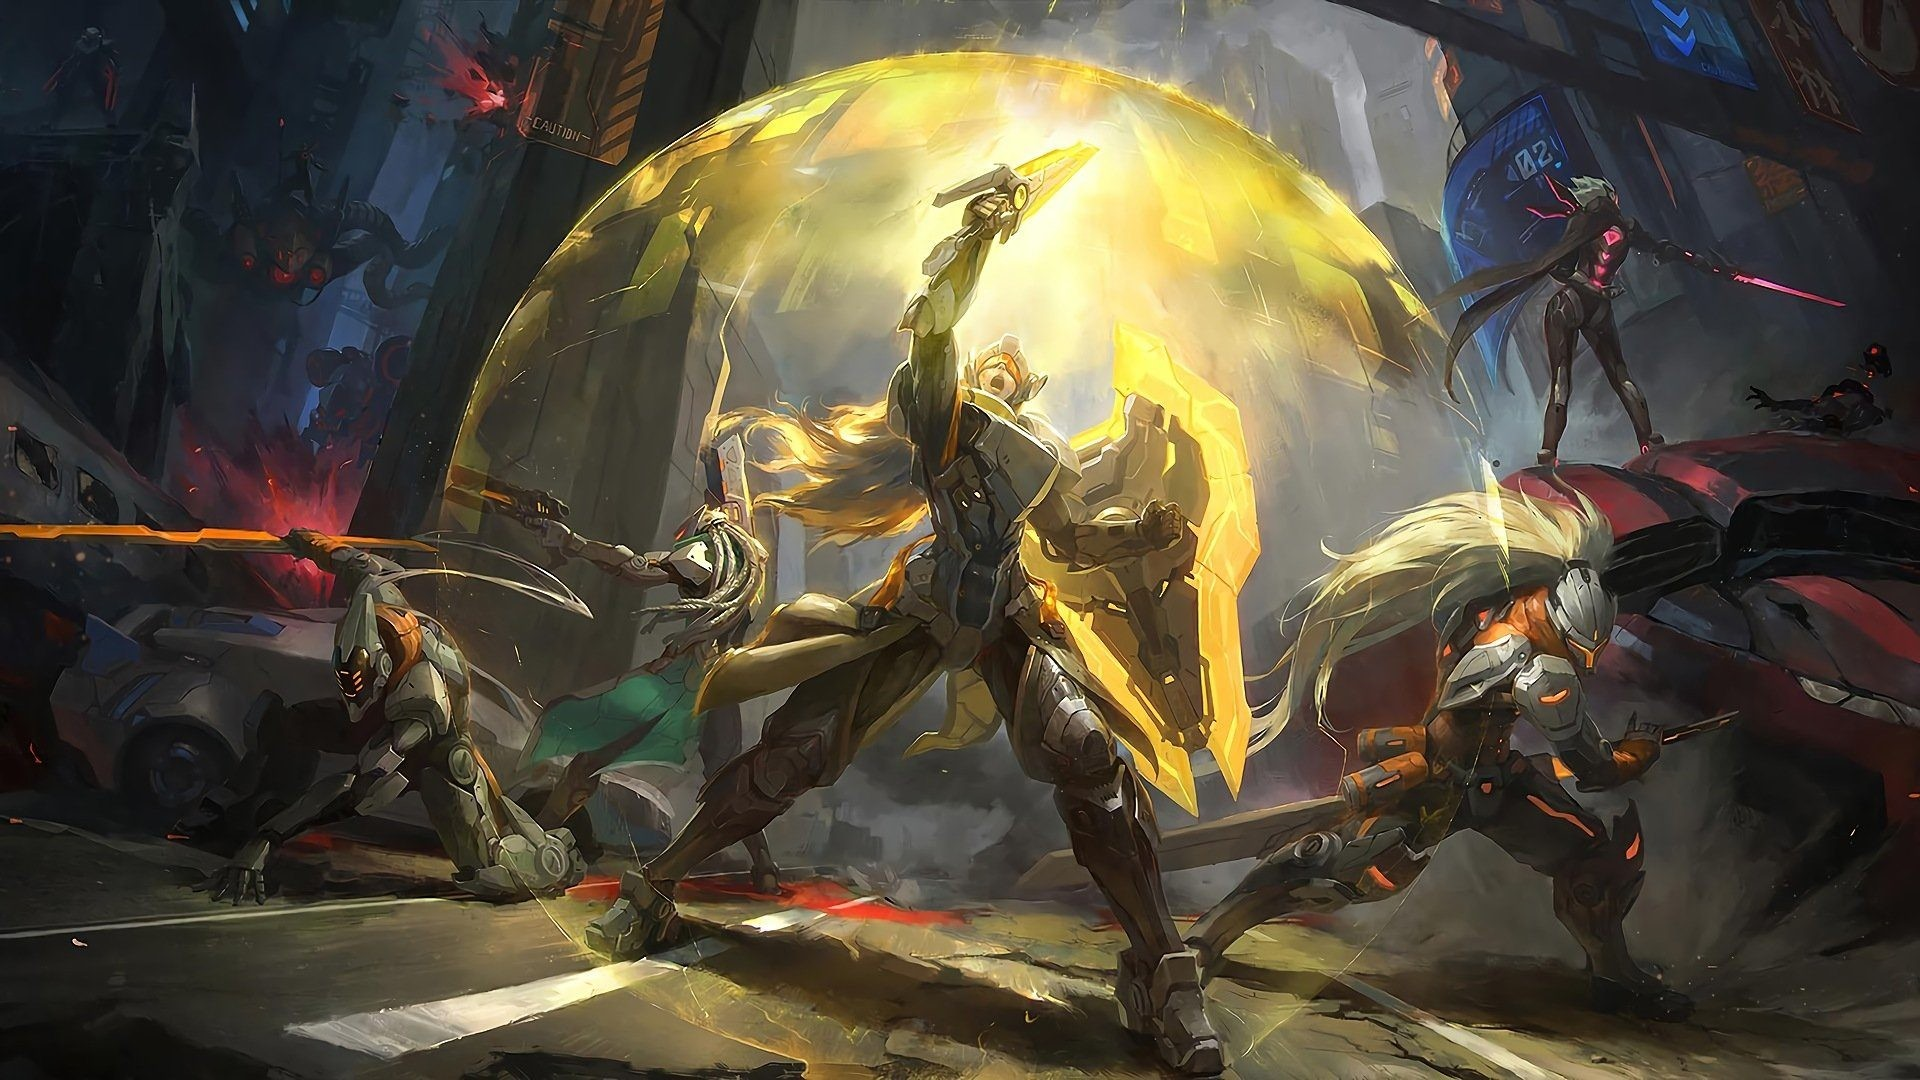 Res: 1920x1080, Download League Of Legends Master Yi (League Of Legends) Lucian (League Of  Legends) Fiora (League Of Legends) Leona (League Of Legends) Yasuo (League  Of ...